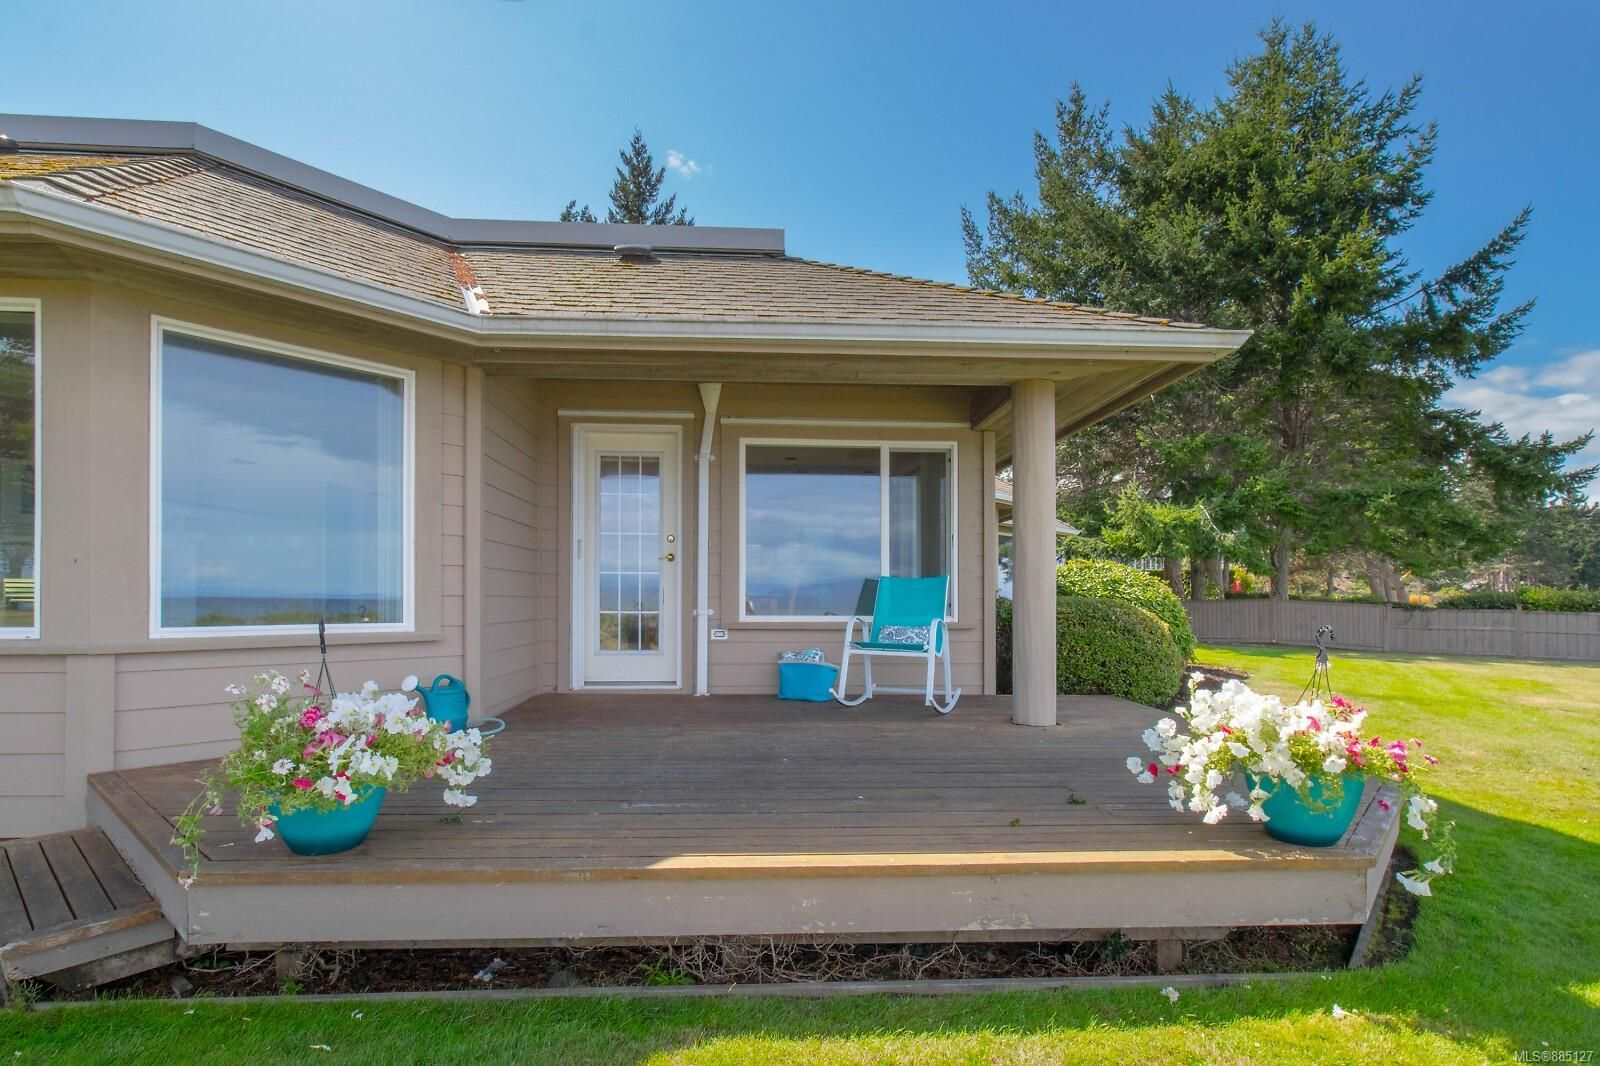 Photo 42: Photos: 26 529 Johnstone Rd in : PQ French Creek Row/Townhouse for sale (Parksville/Qualicum)  : MLS®# 885127